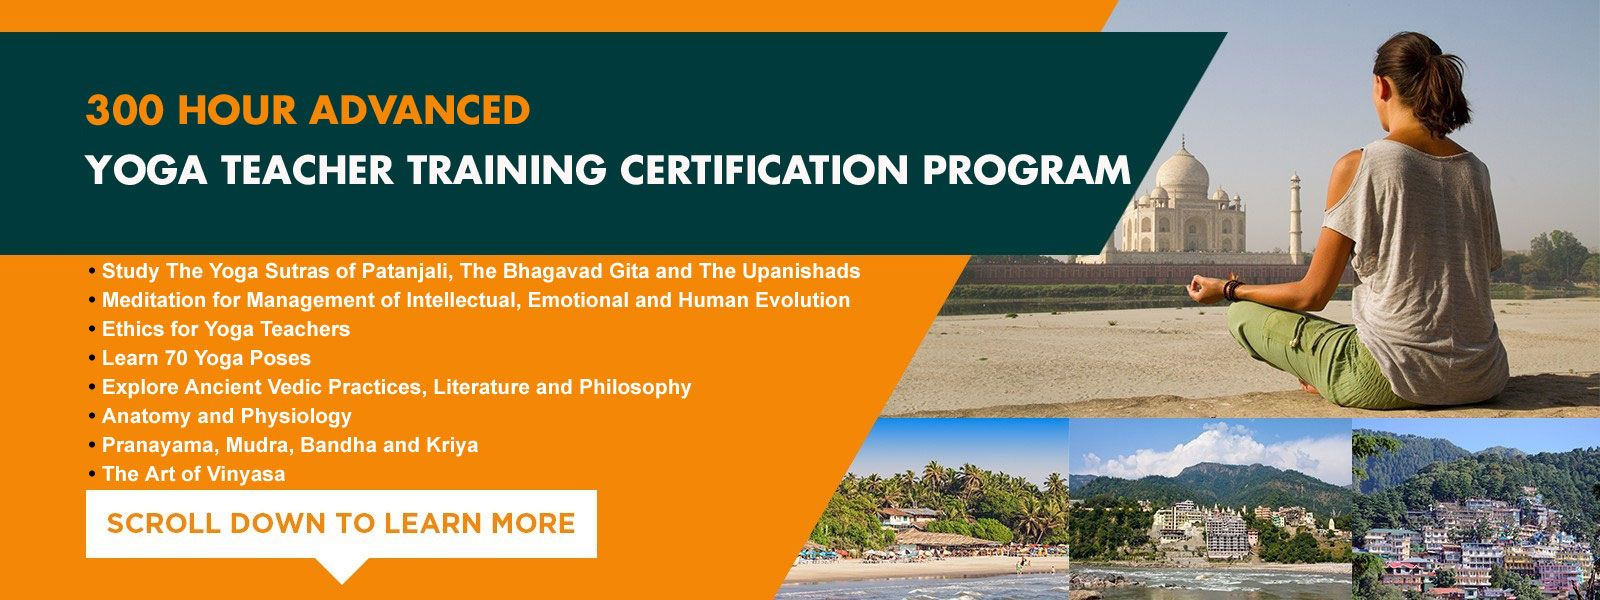 300 Hour Advanced Yoga Teacher Training Certification In India